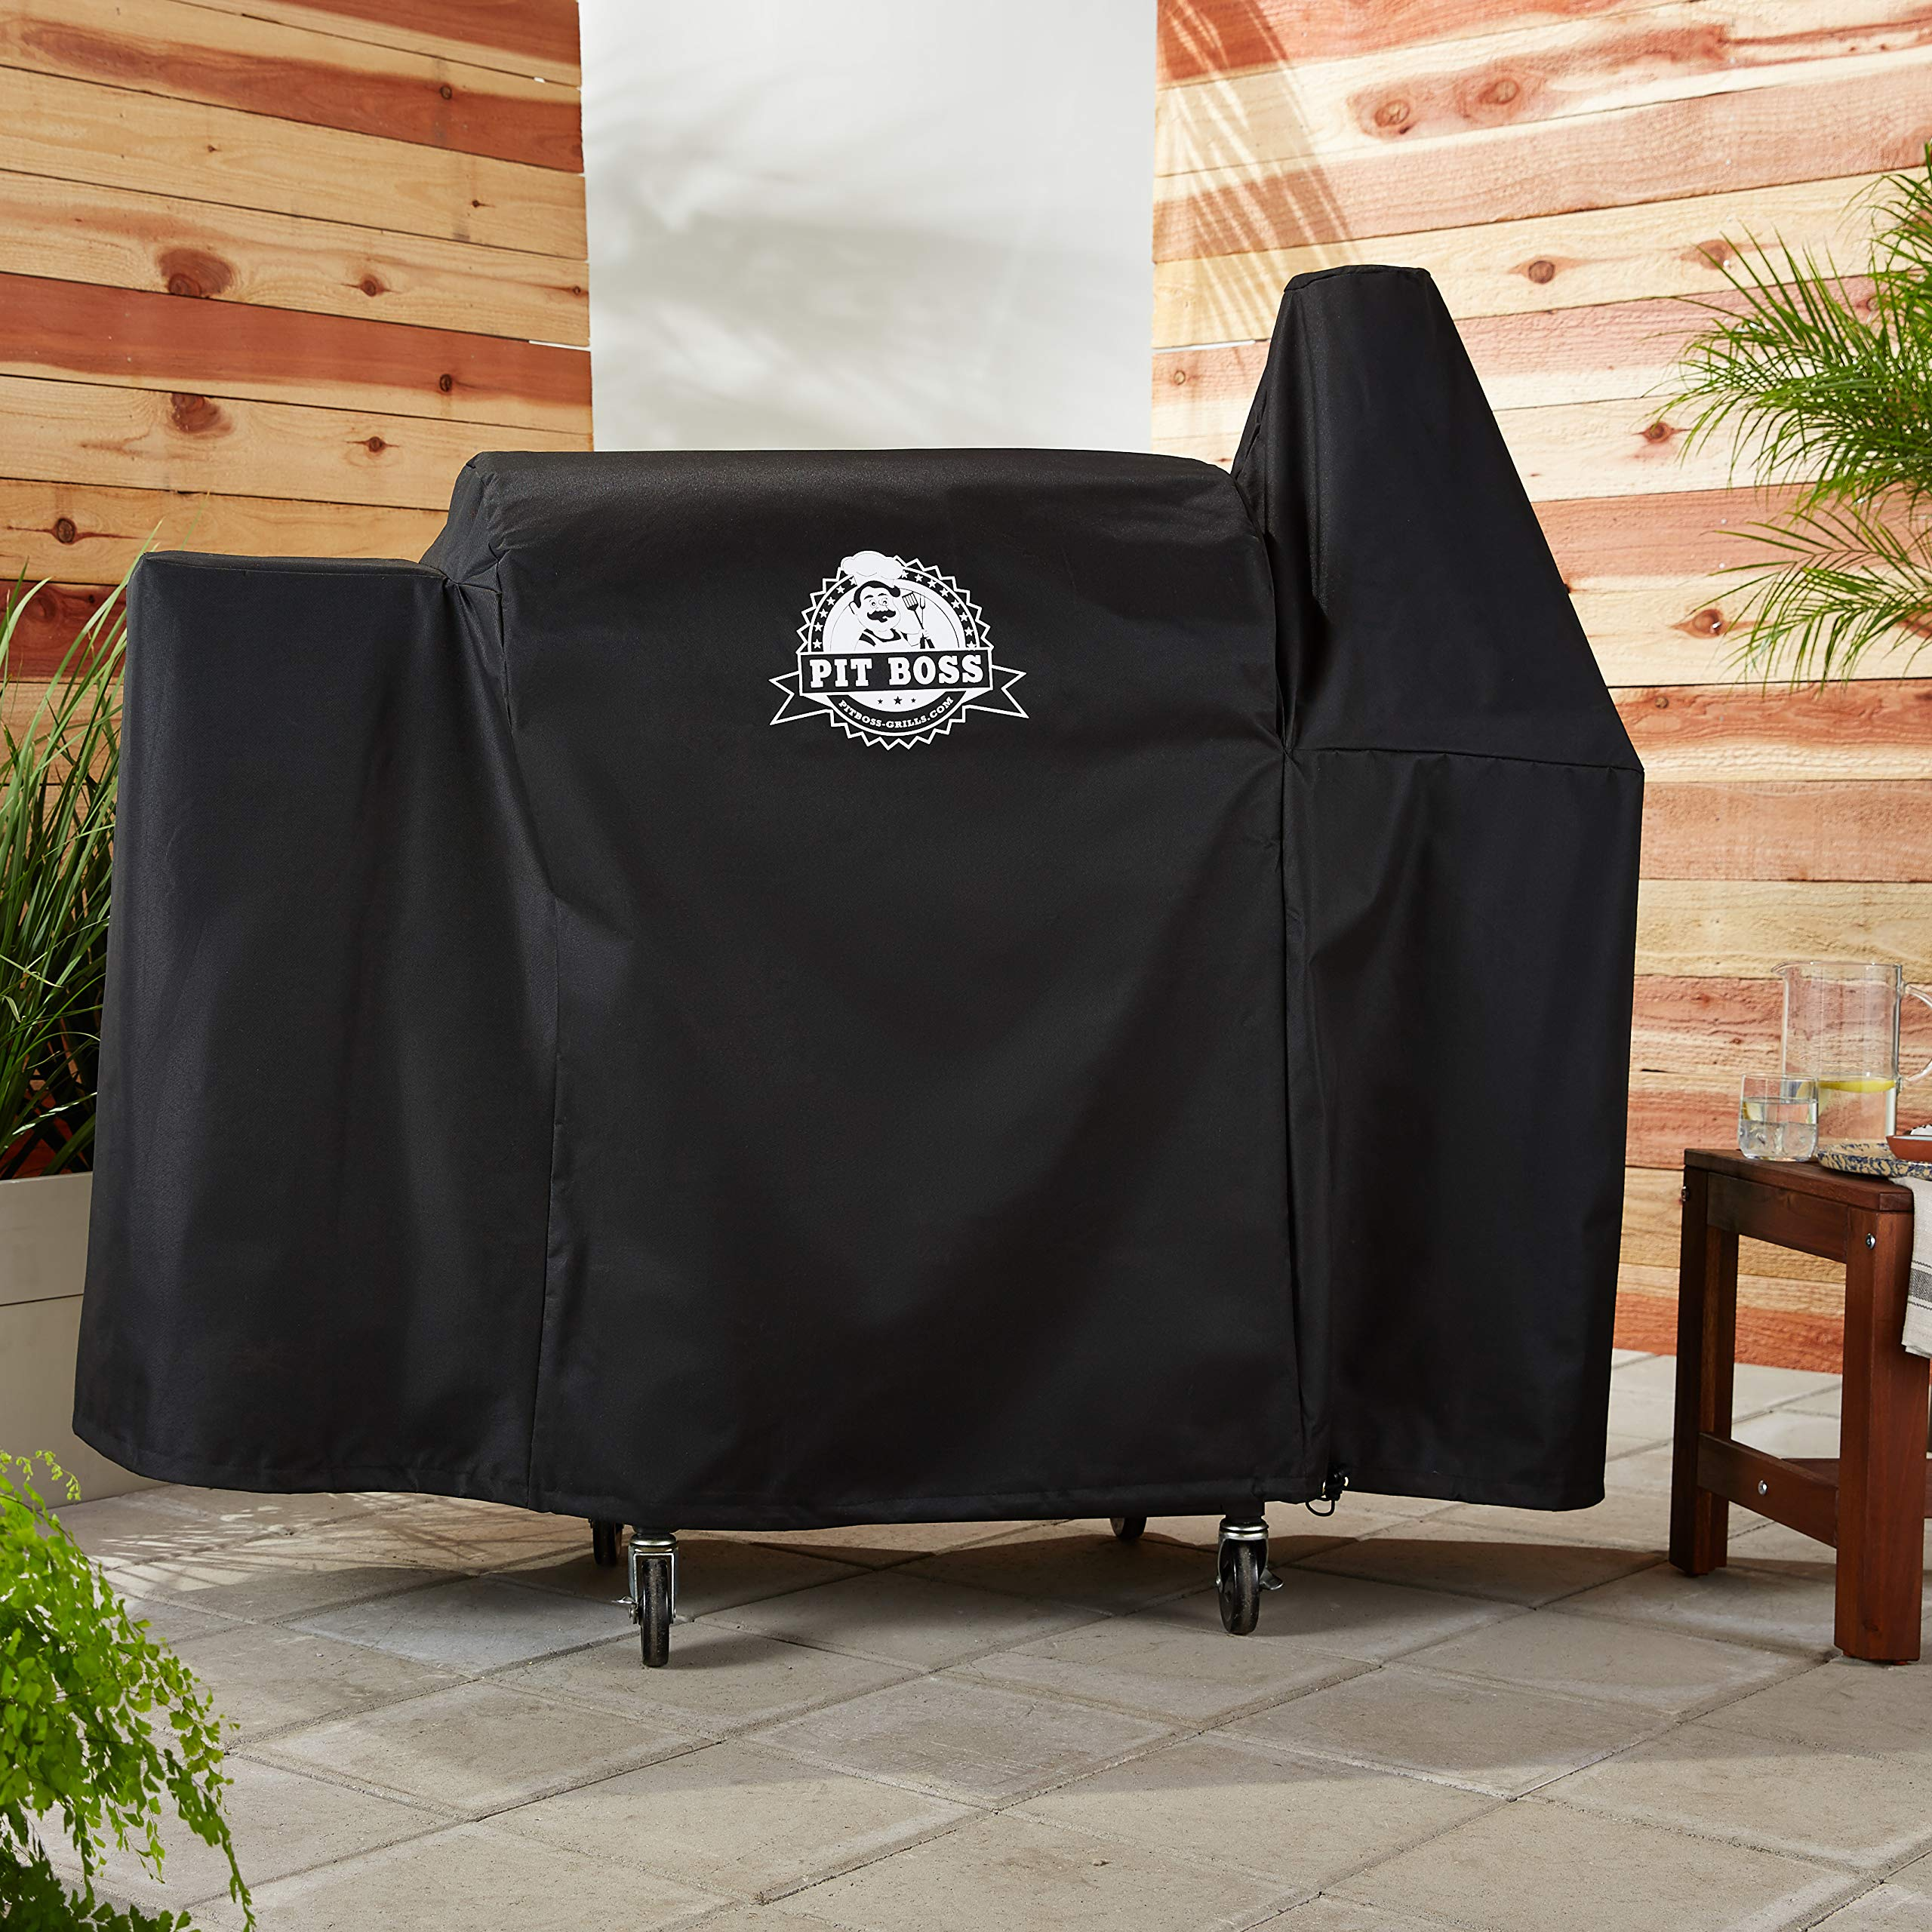 Pit Boss Grills 820 Deluxe Grill Cover by Pit Boss Grills (Image #2)